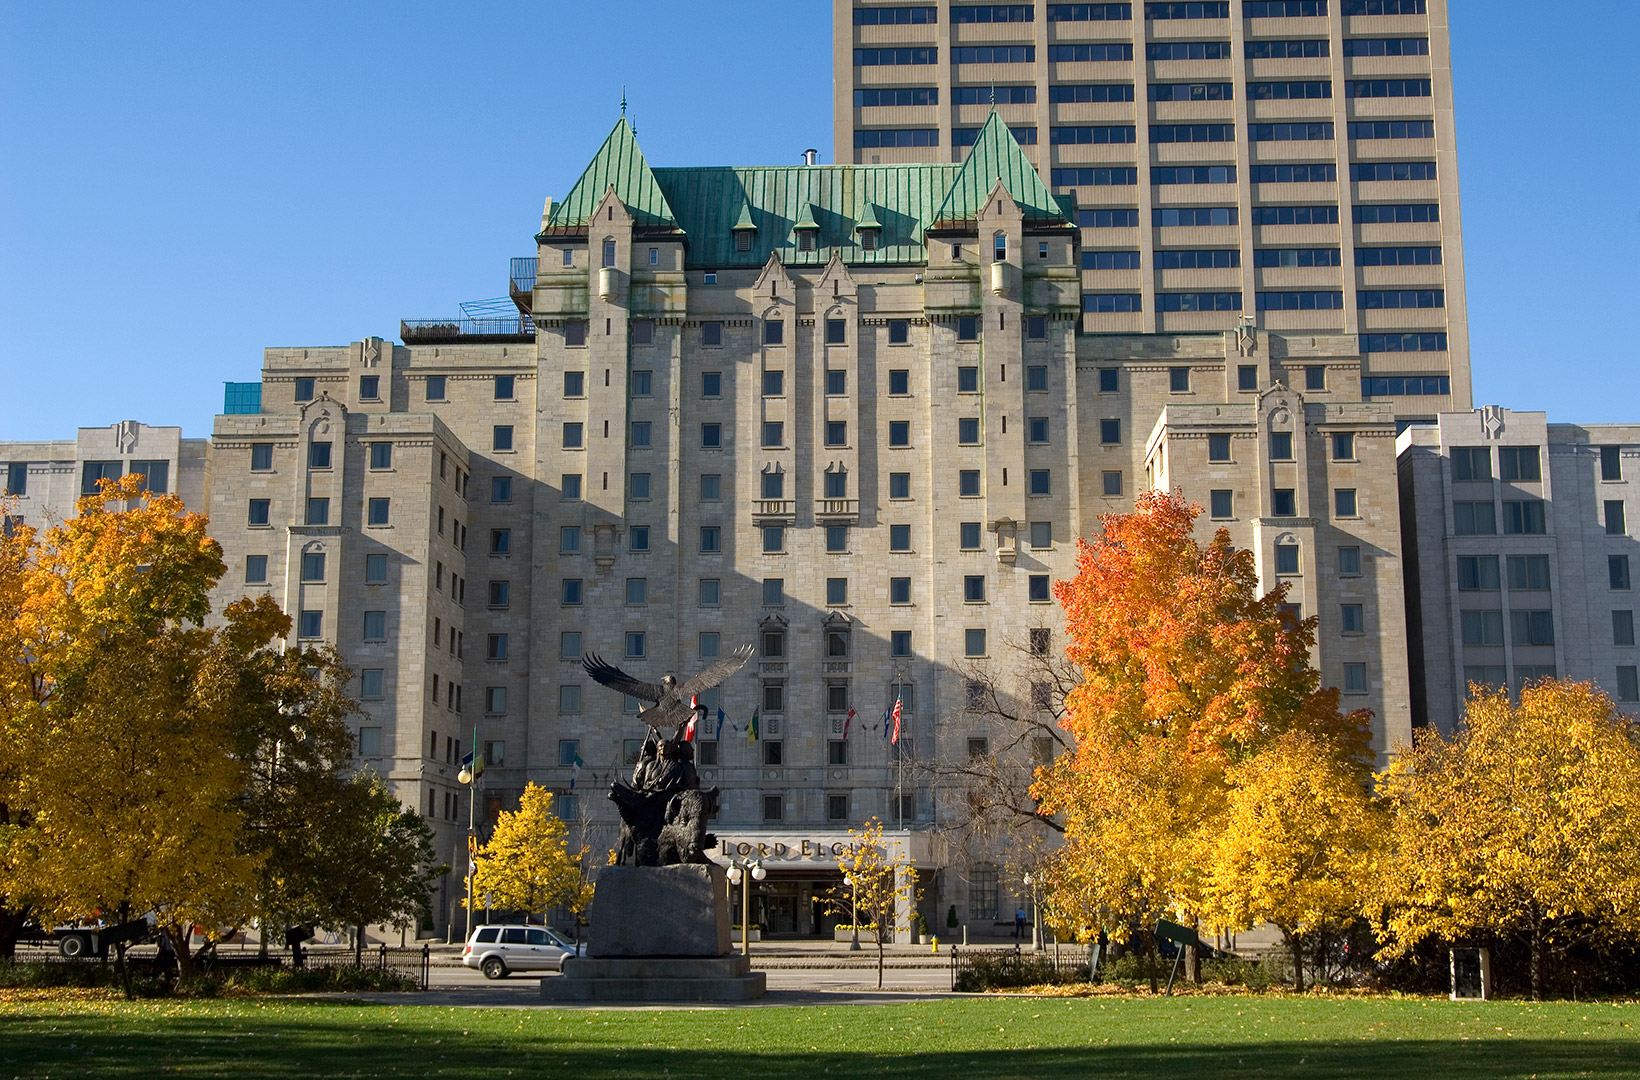 Lord Elgin Hotel in downtown Ottawa overlooking the beautiful Confederation Park